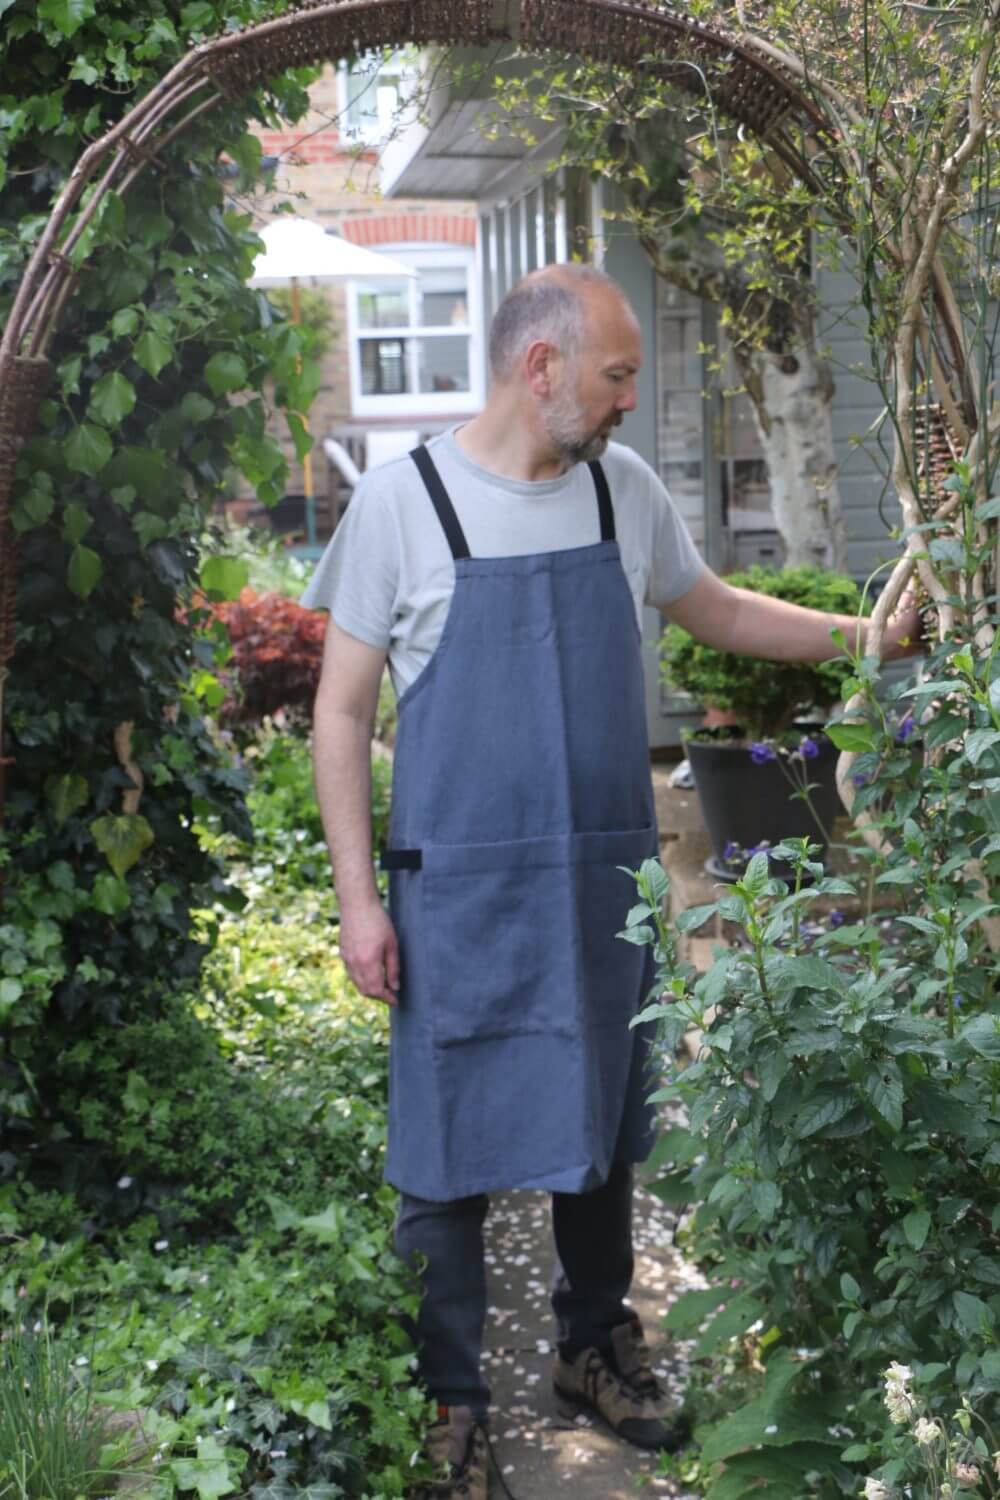 Luxury linen apron. Slate blue apron, no ties